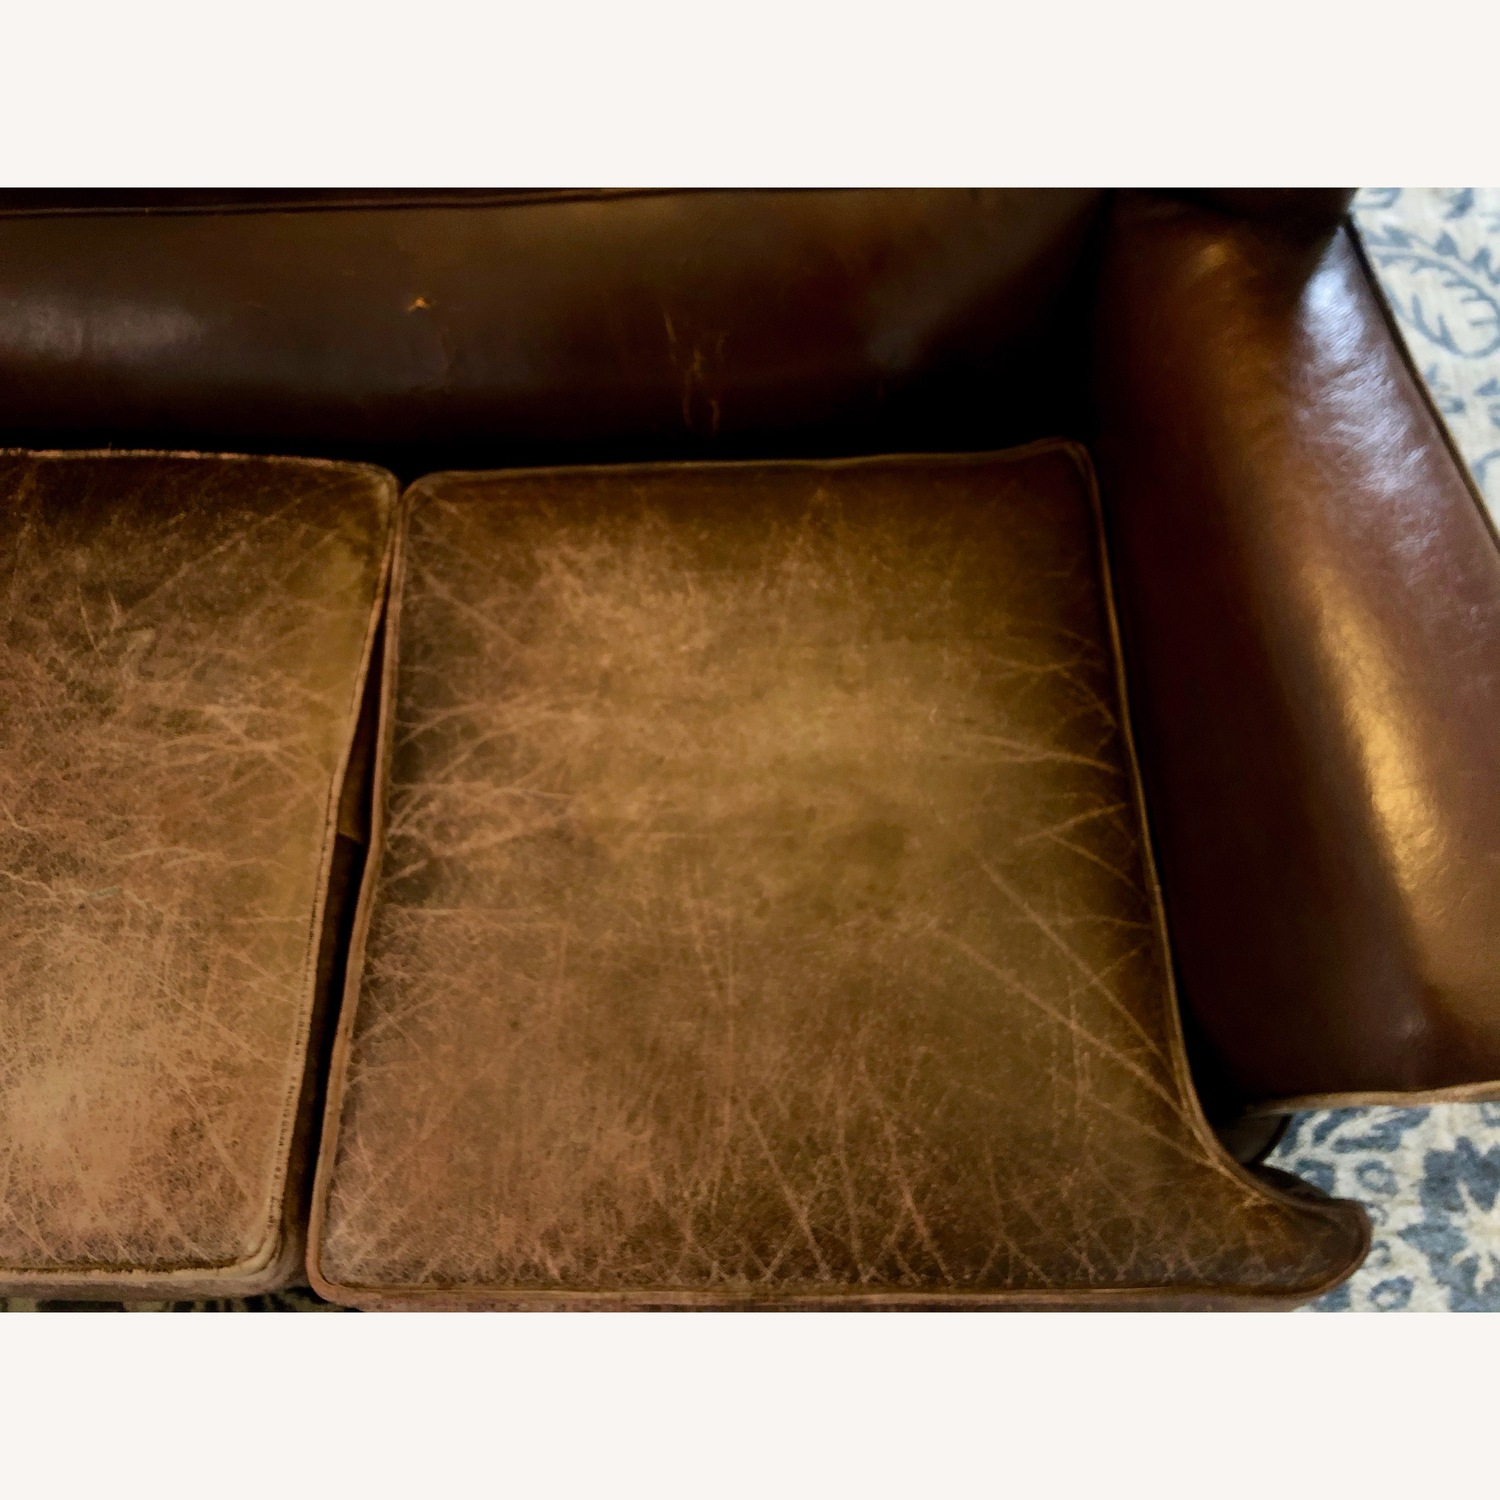 Vintage 1920s French Leather Sofa - image-6